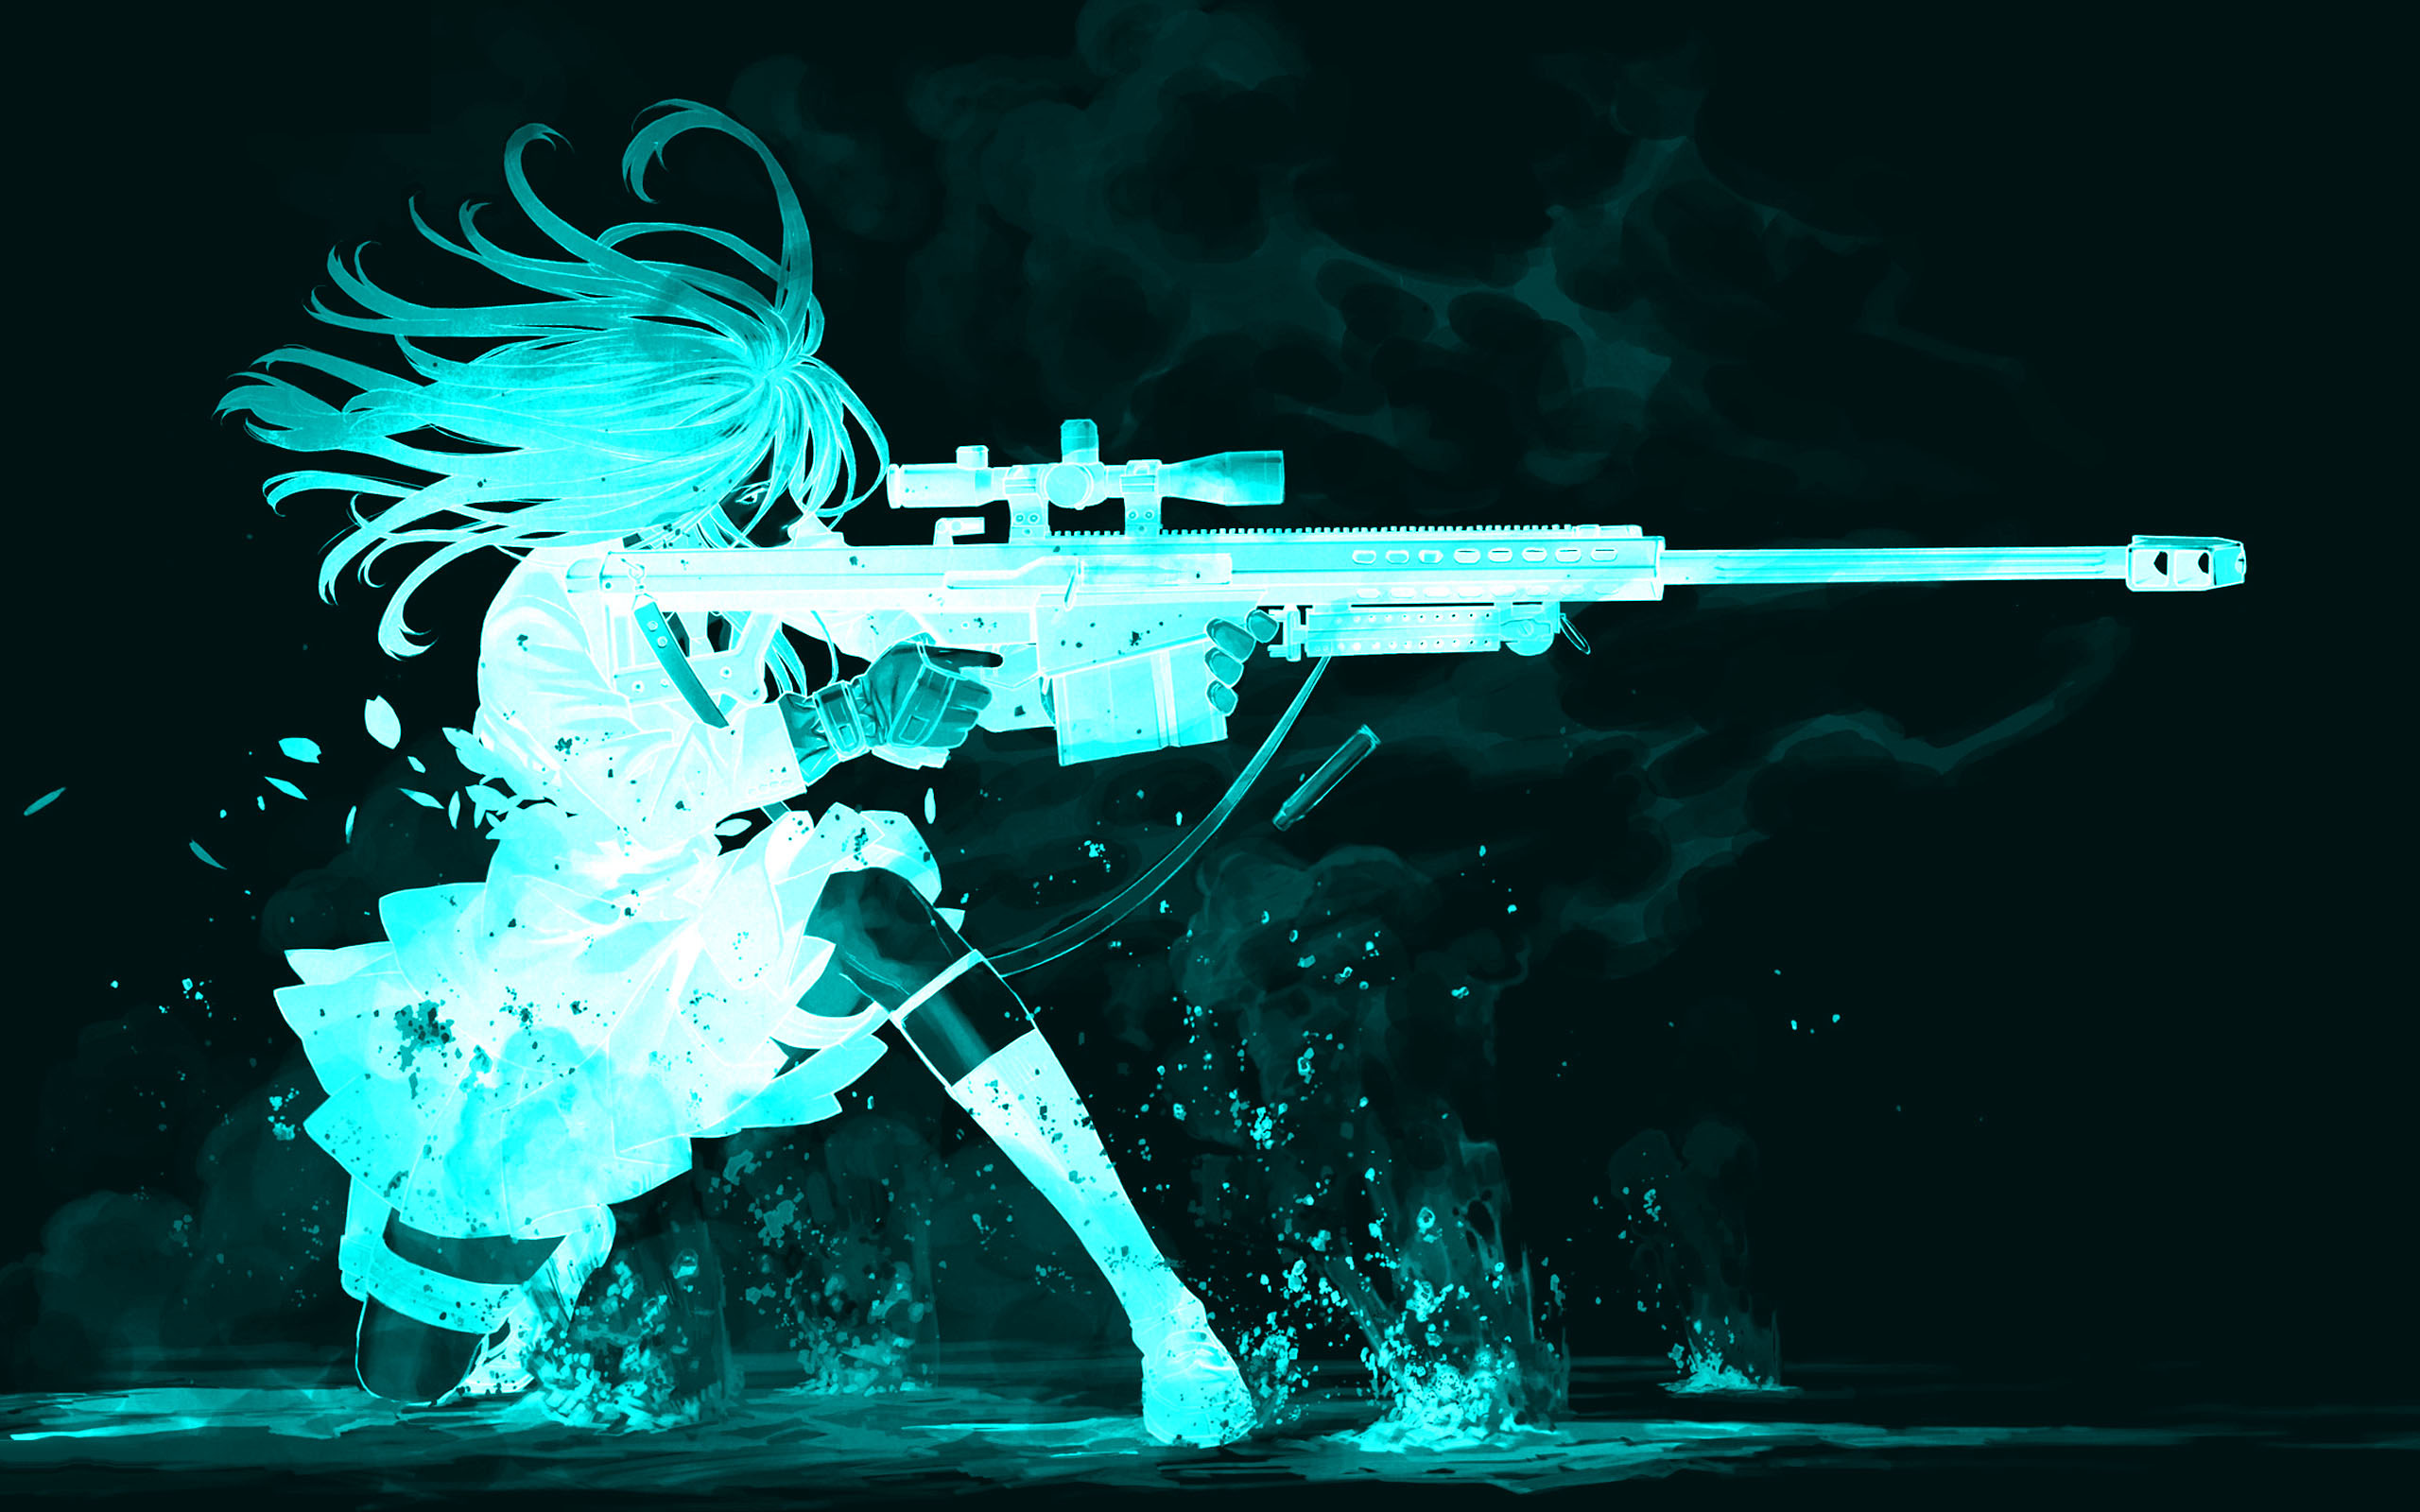 Cool Anime Background 59 Pictures